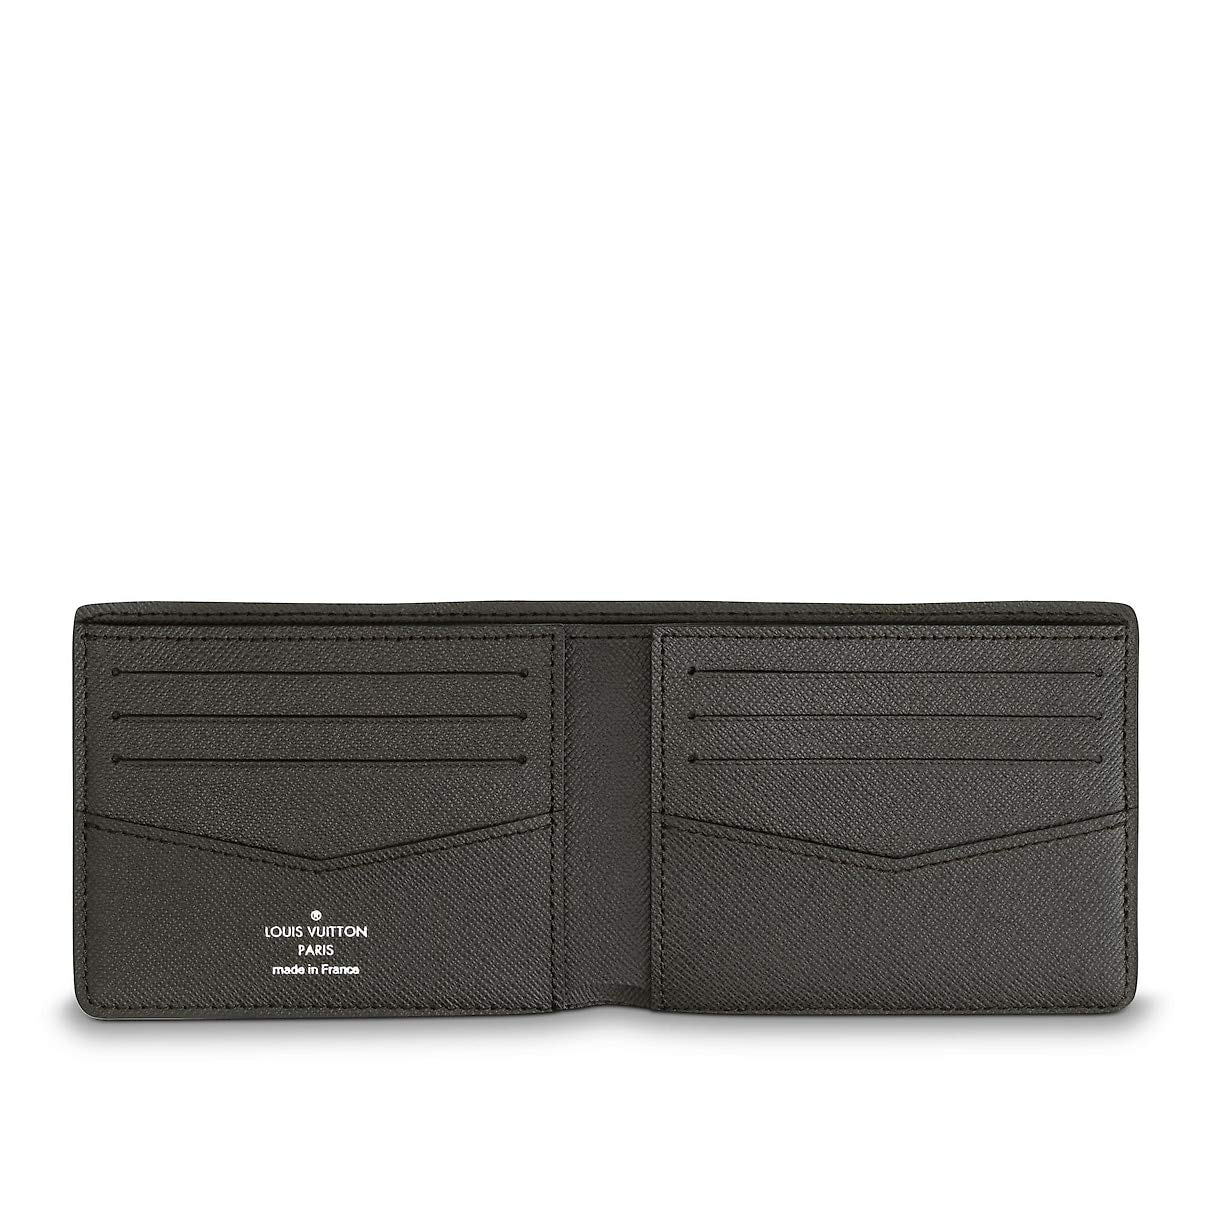 fa8b3992a971 Amazon.com  Louis Vuitton Damier Slender Wallet Article  N61208 Made in  France  Sports   Outdoors